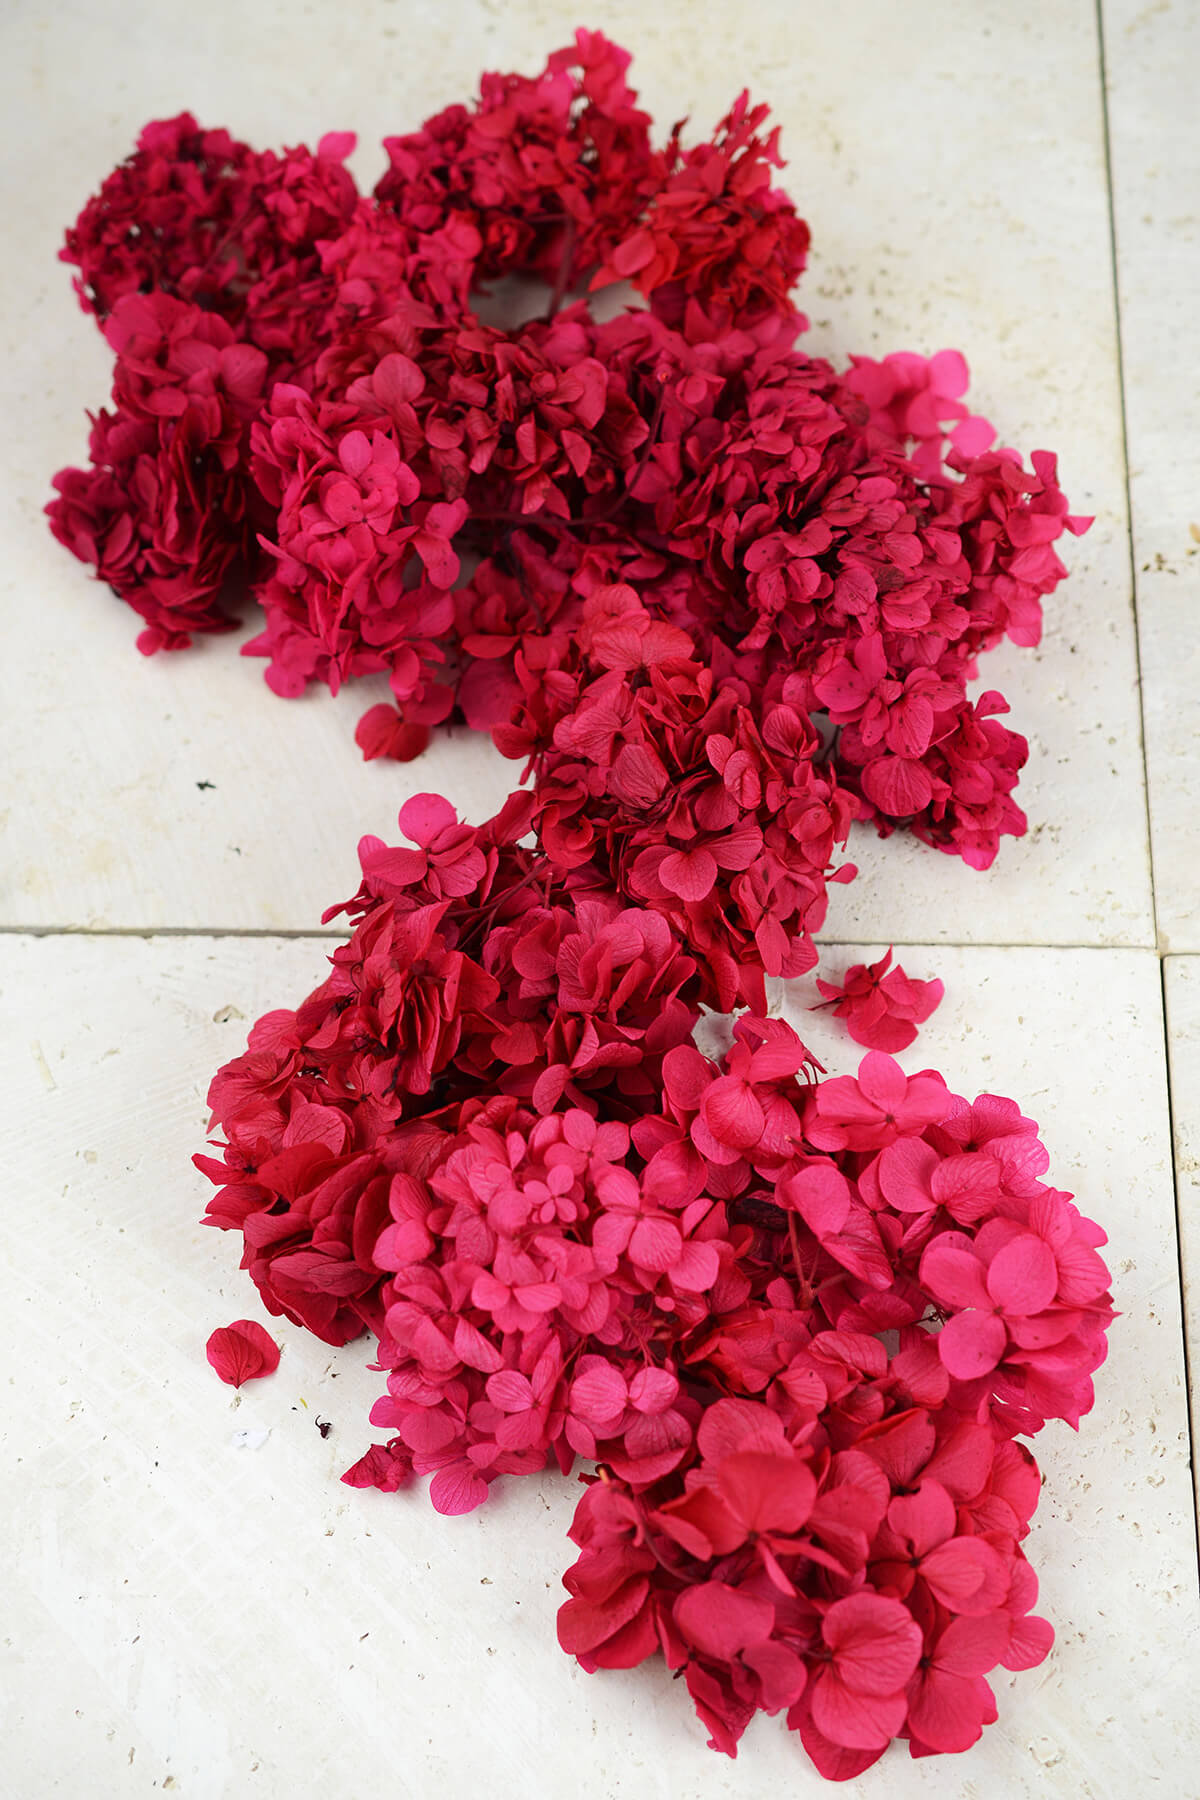 Preserved Red Hydrangea Flowers 2 oz., Potpourri